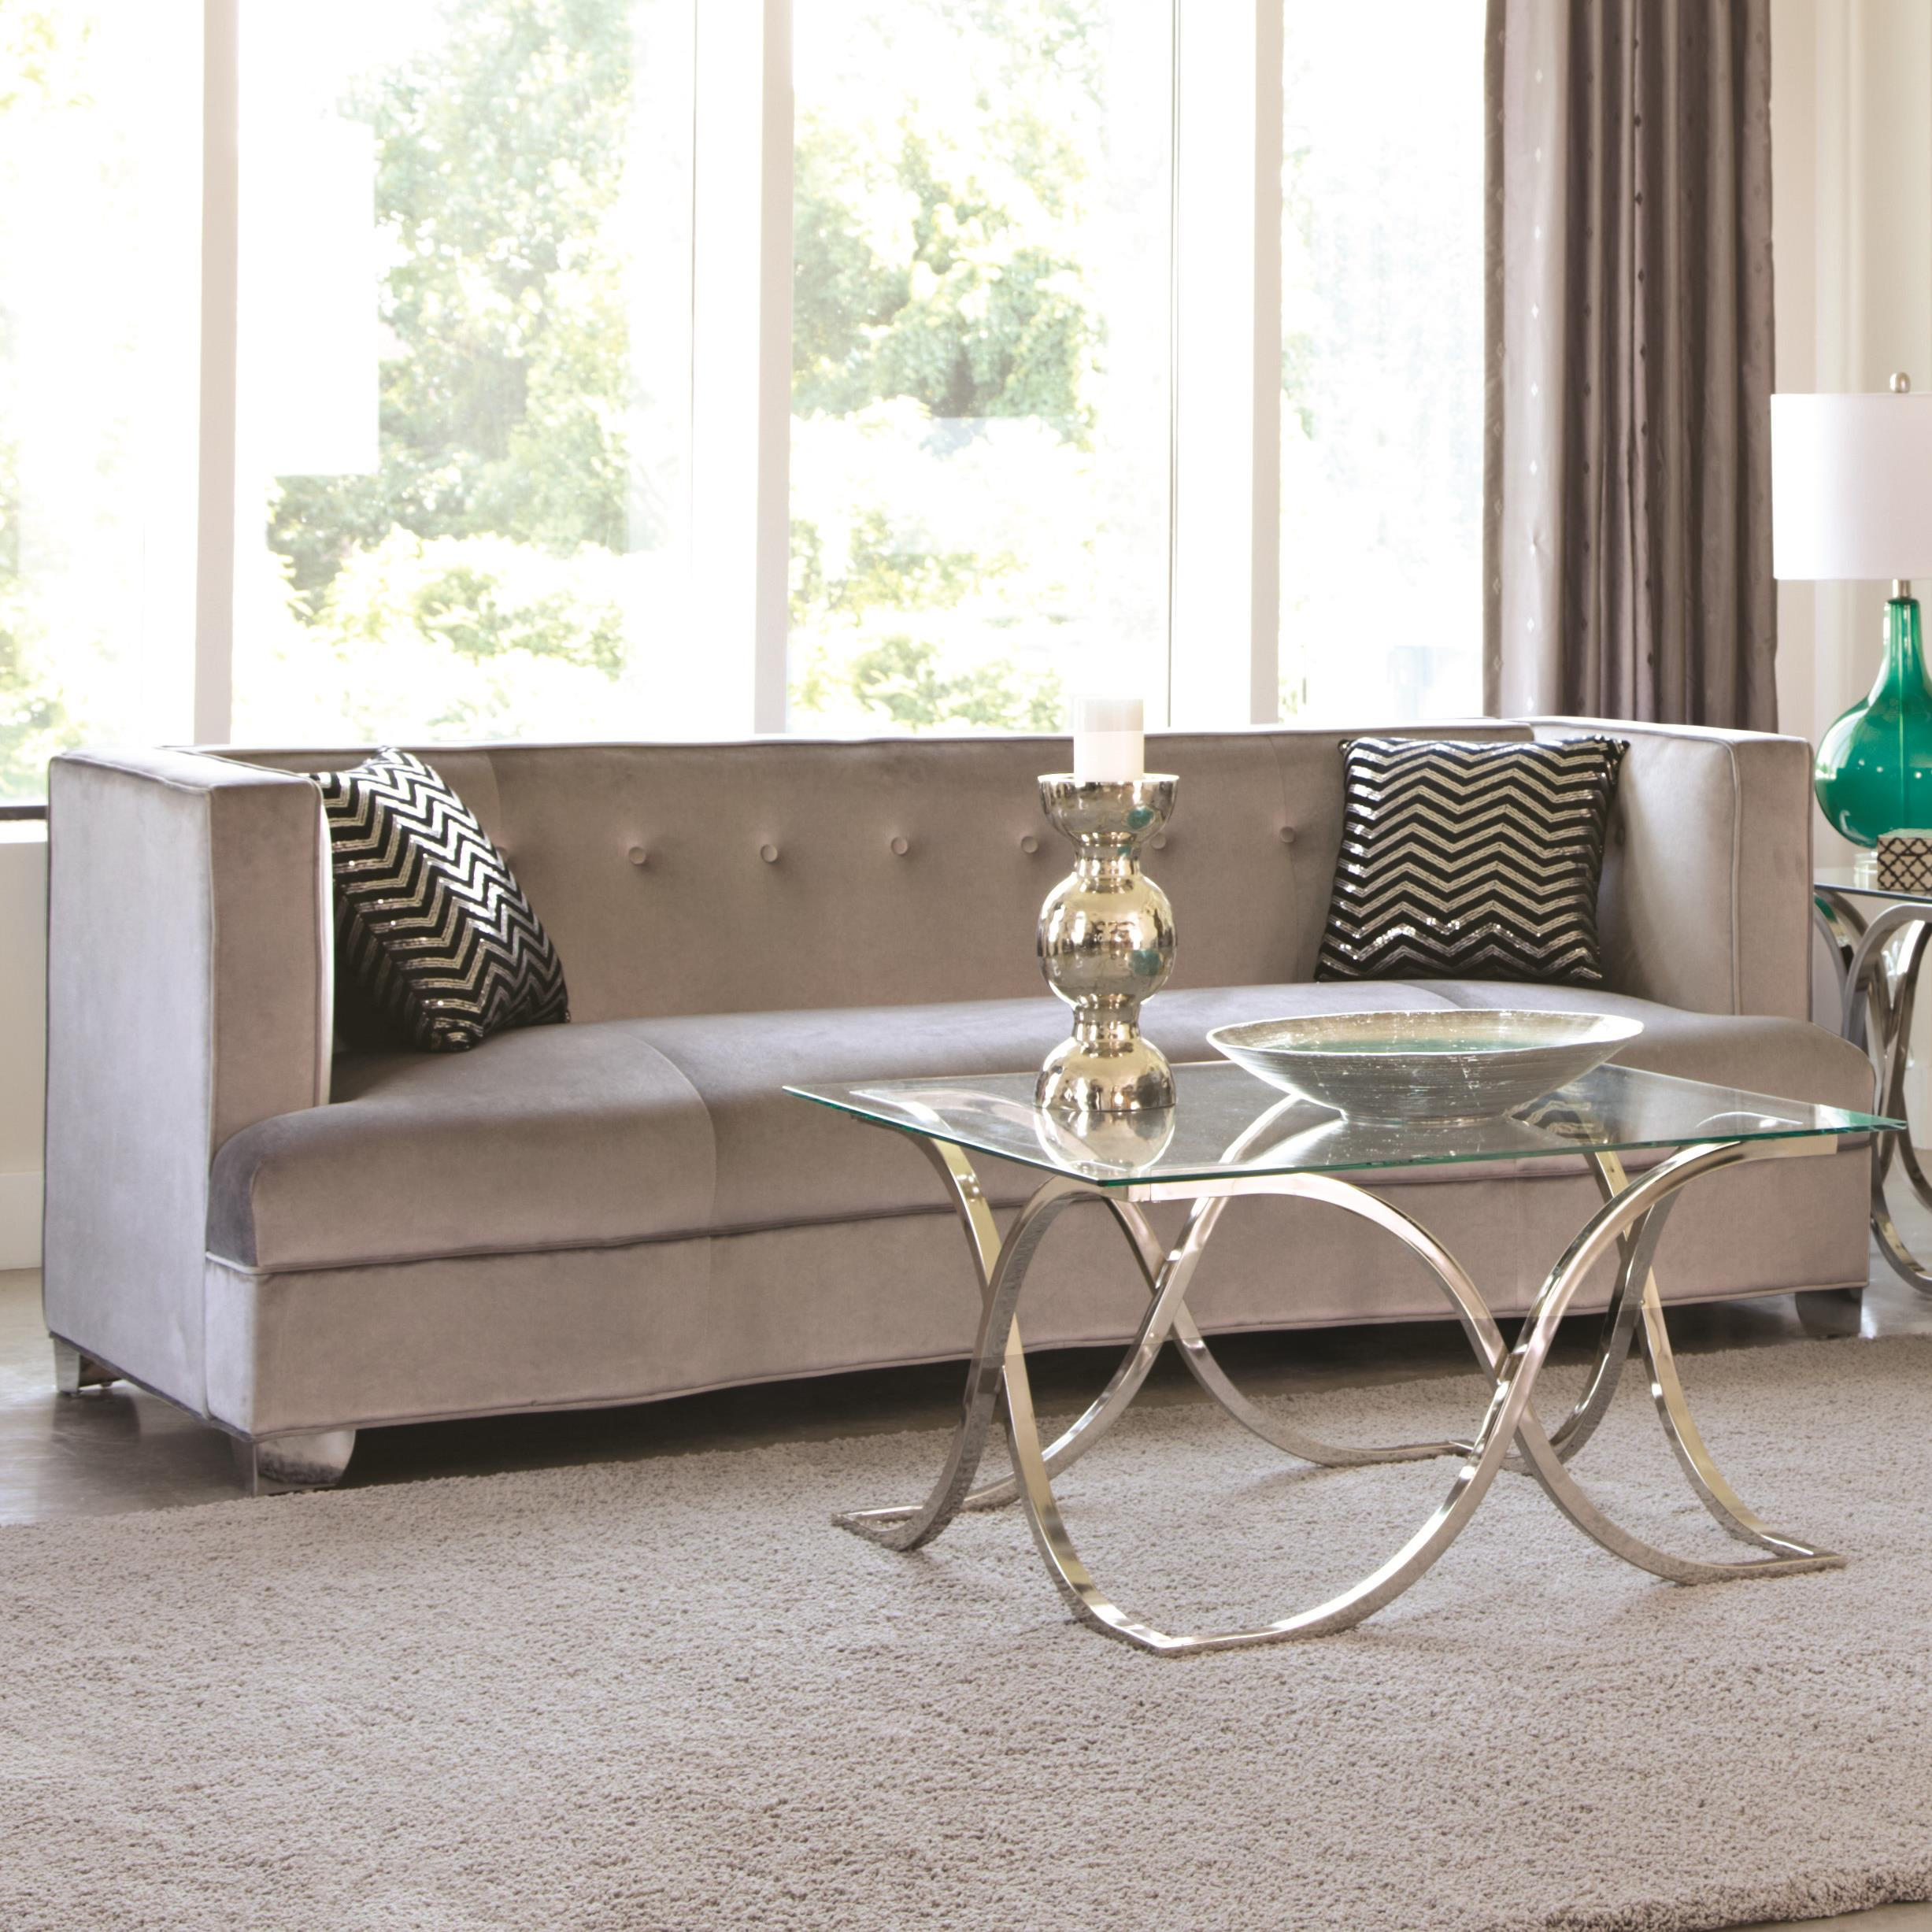 silver grey sofa what colour walls less than 30 inches deep caldwell velvet with chrome legs and two